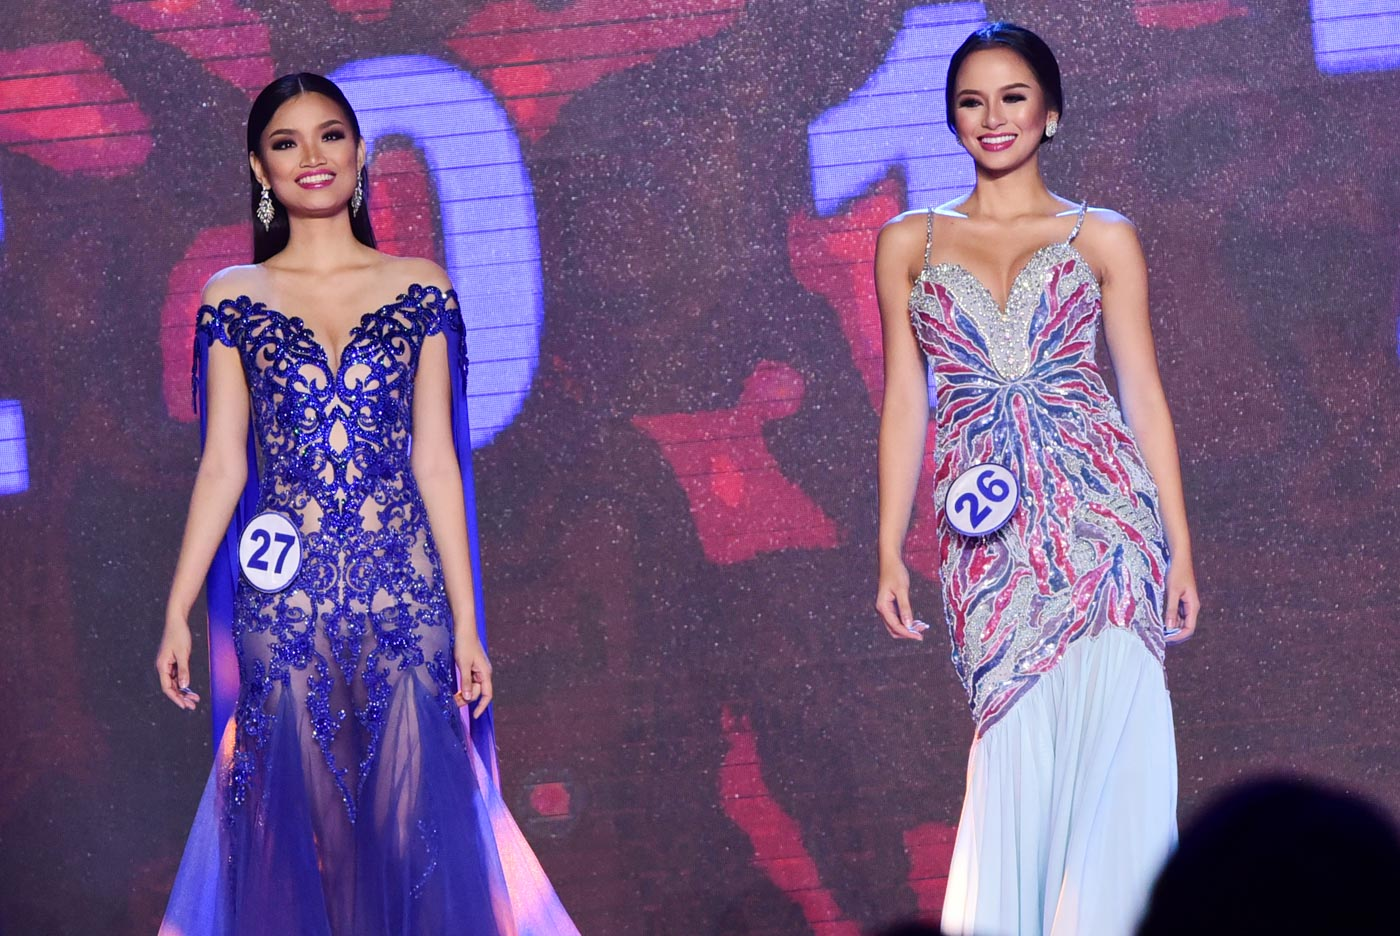 IN PHOTOS: Miss World PH 2017 evening gown competition